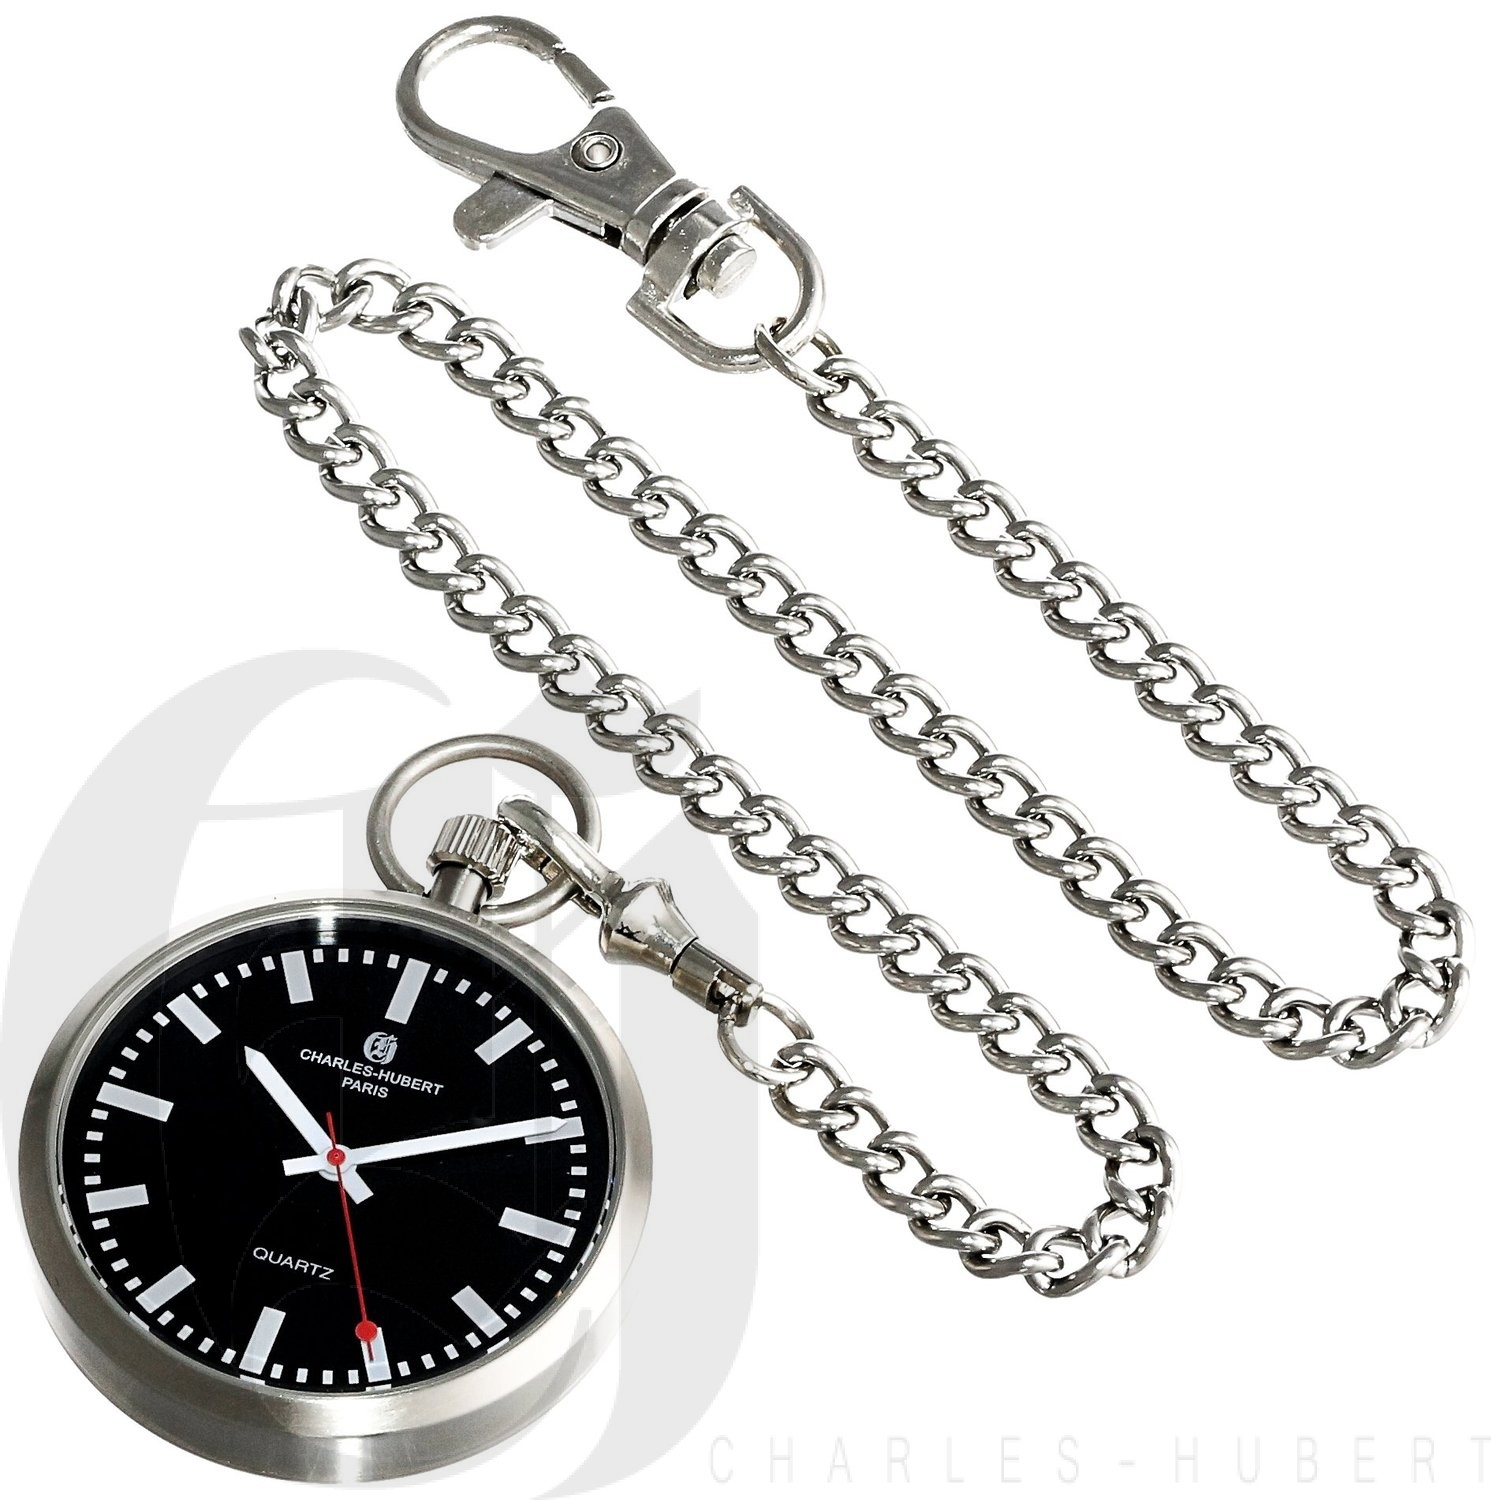 Charles-Hubert Paris Stainless Steel Open Face Quartz Pocket Watch